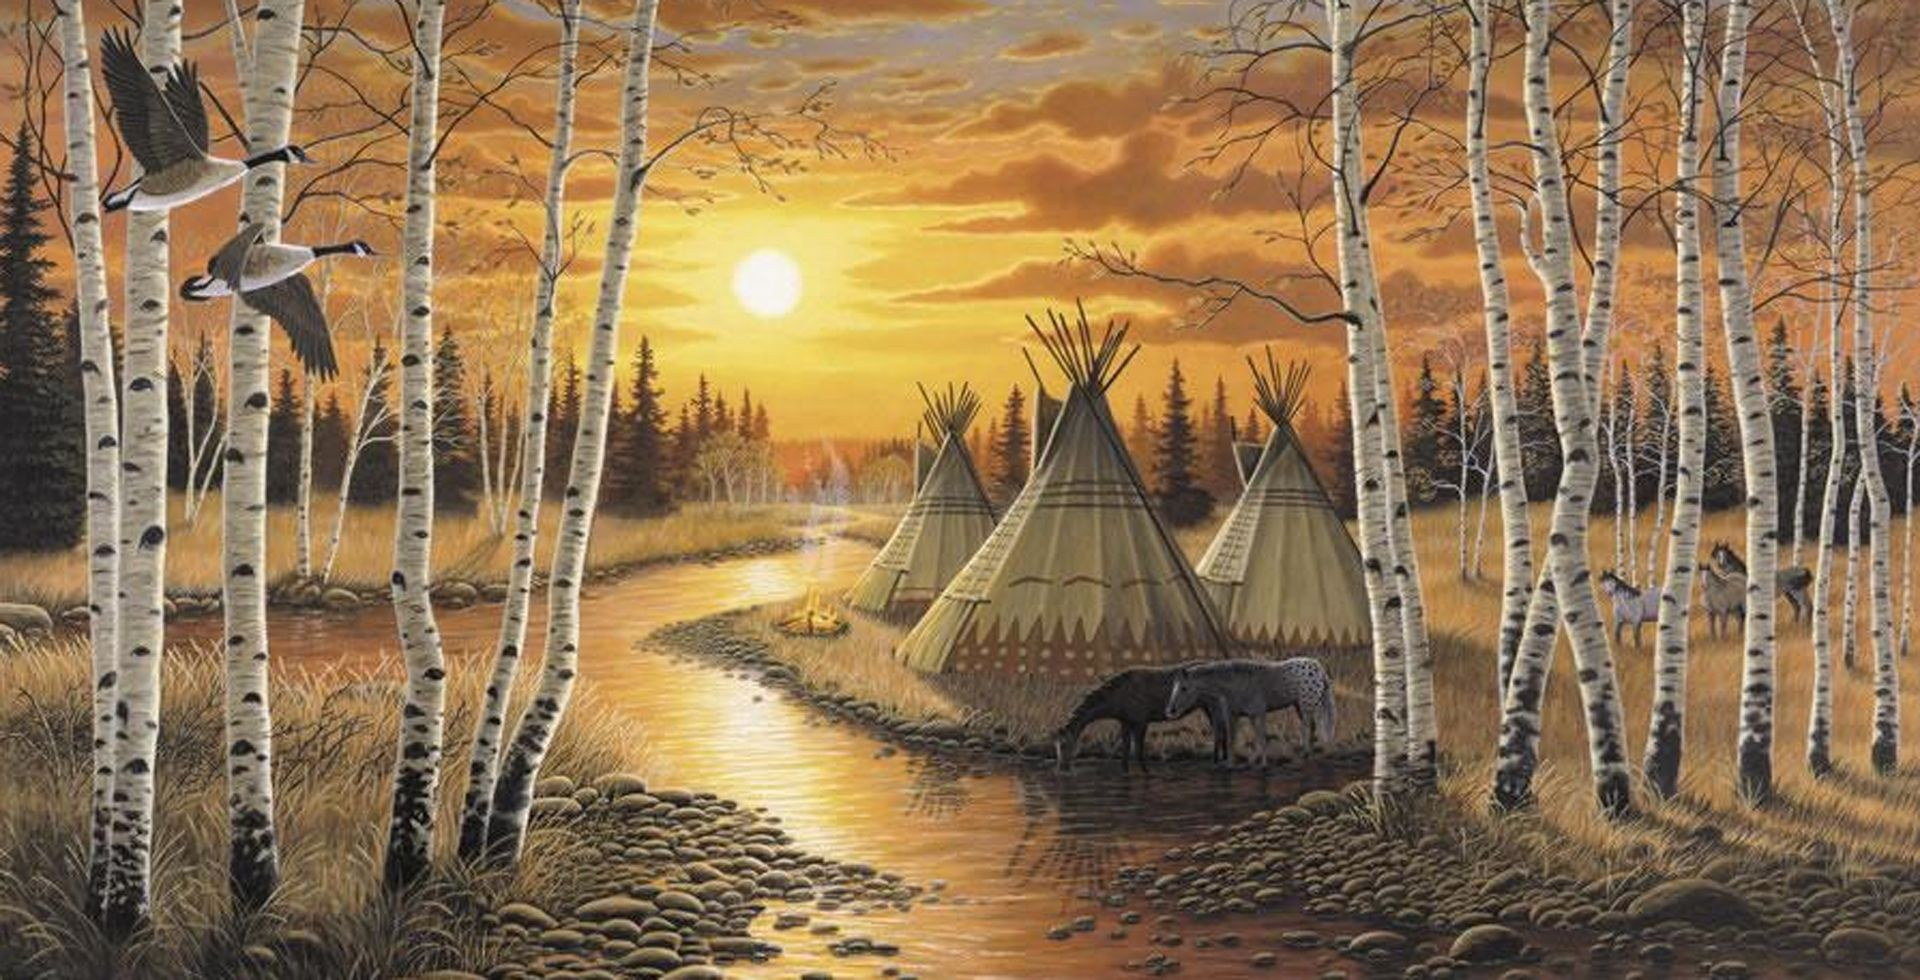 1920x980 Free Native American Wolf Wallpaper | Wholesale Wall Murals ...